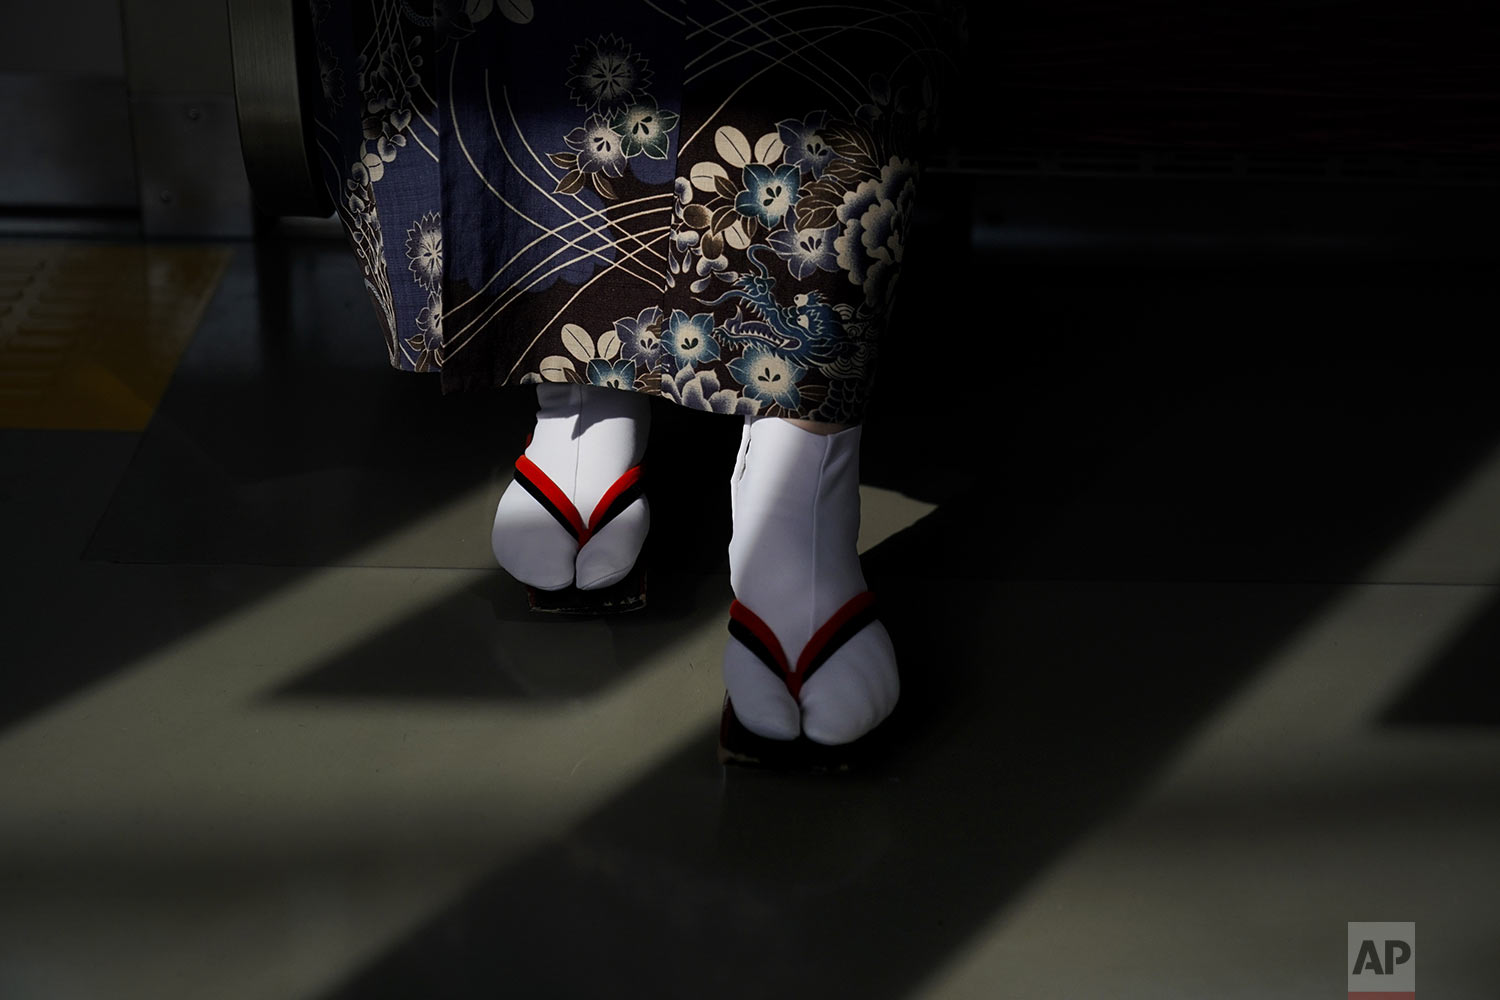 "A woman wearing a kimono and traditional Japanese sandals called ""geta"""" is lit by the afternoon sunlight coming through the window of a train, in Kawagoe, near Tokyo, Friday, Aug. 16, 2019. (AP Photo/Jae C. Hong)"